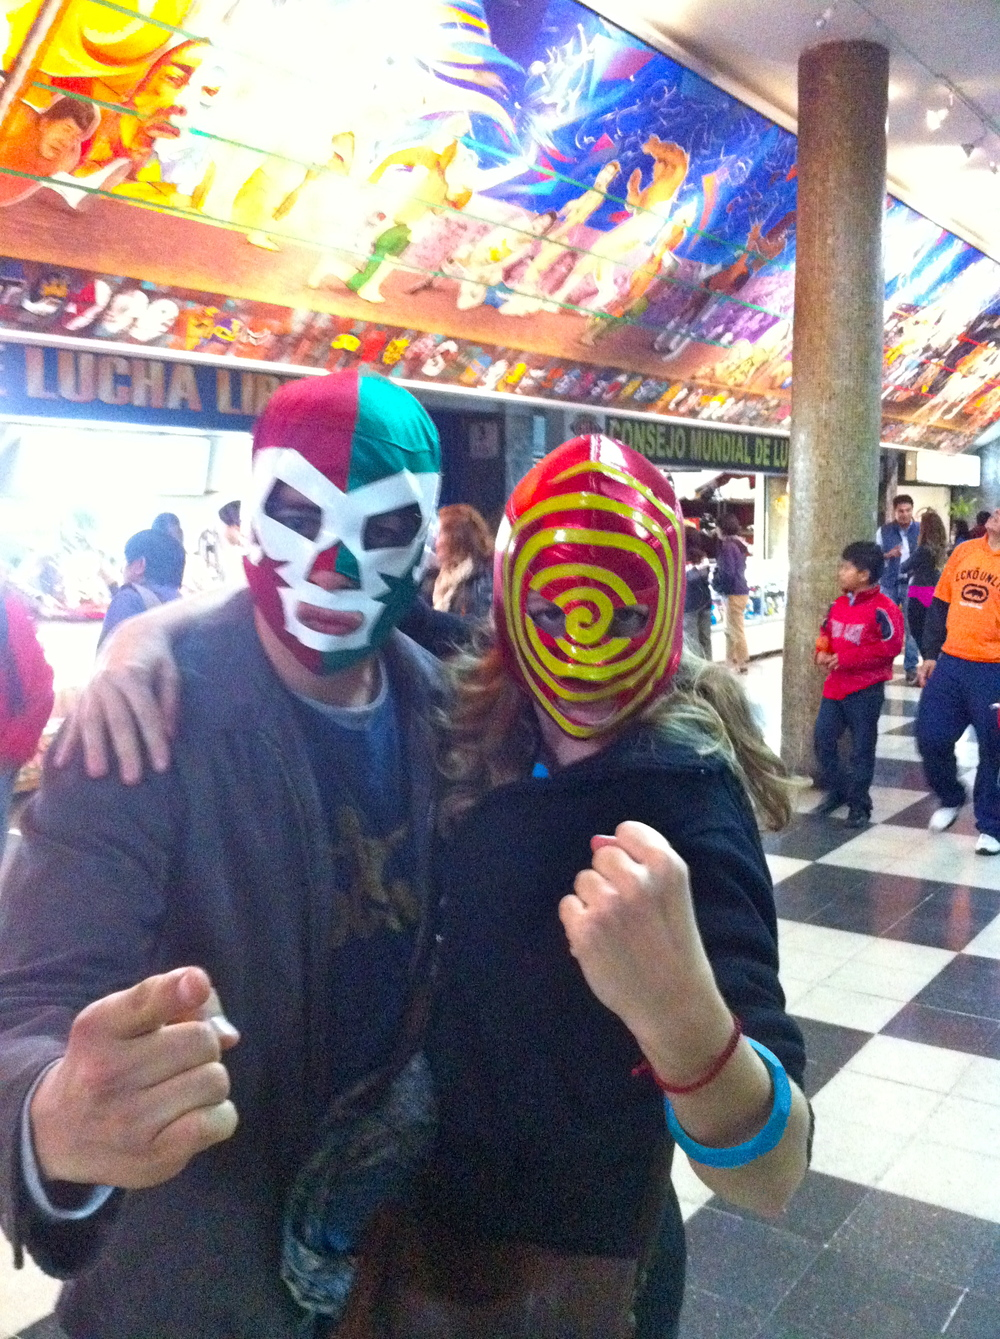 Me and my partner at the Lucha Libre.jpg